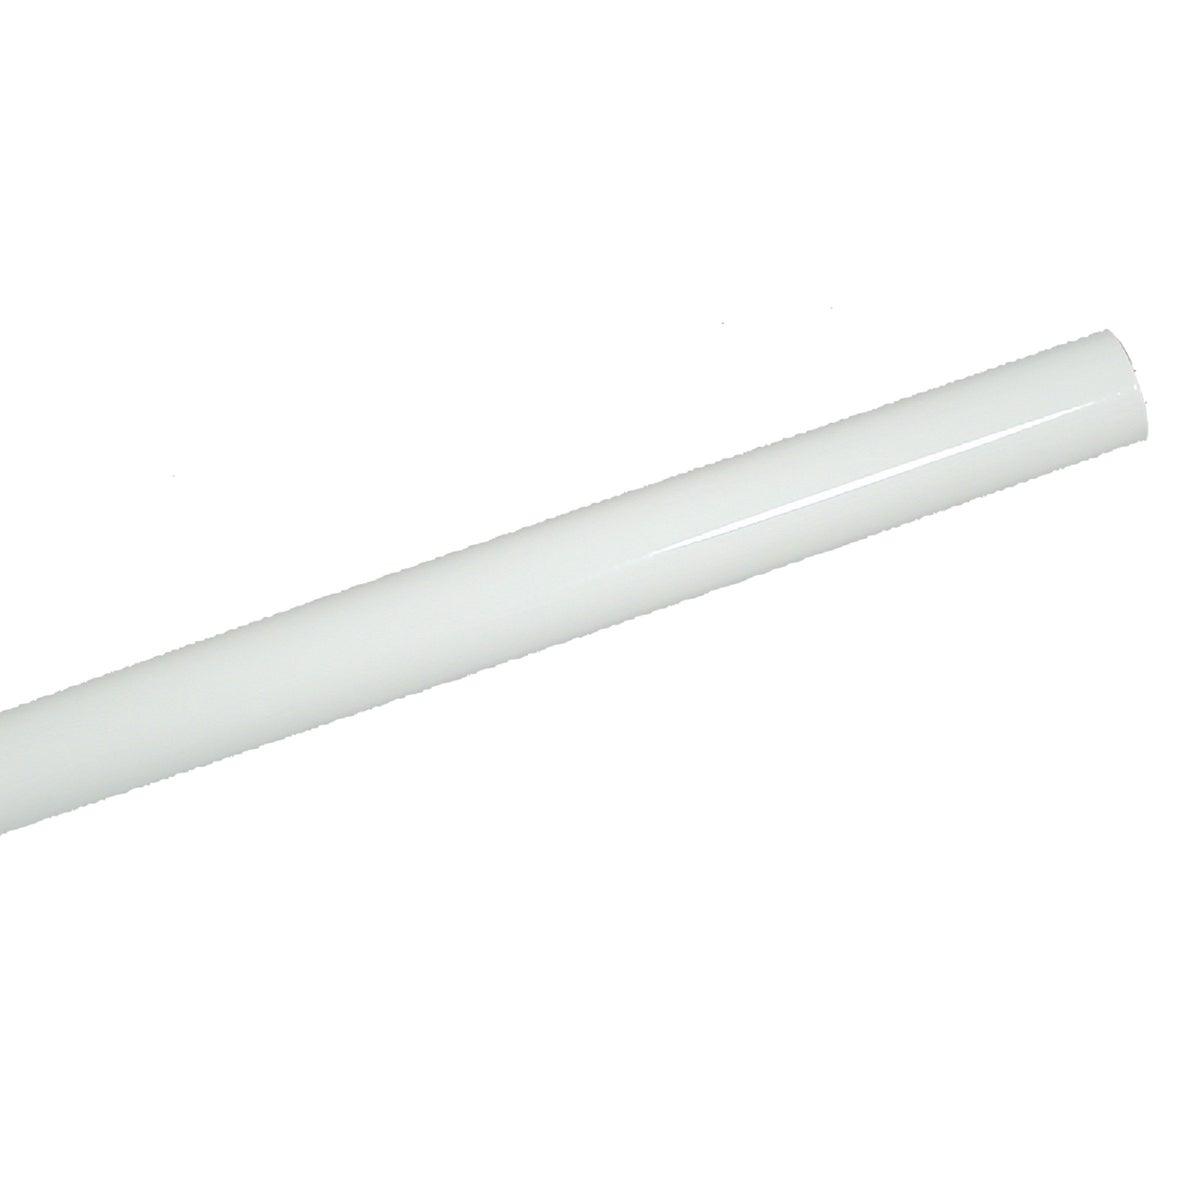 8' WHITE CLOSET POLE - 0018-8 by Knape & Vogt Mfg Co